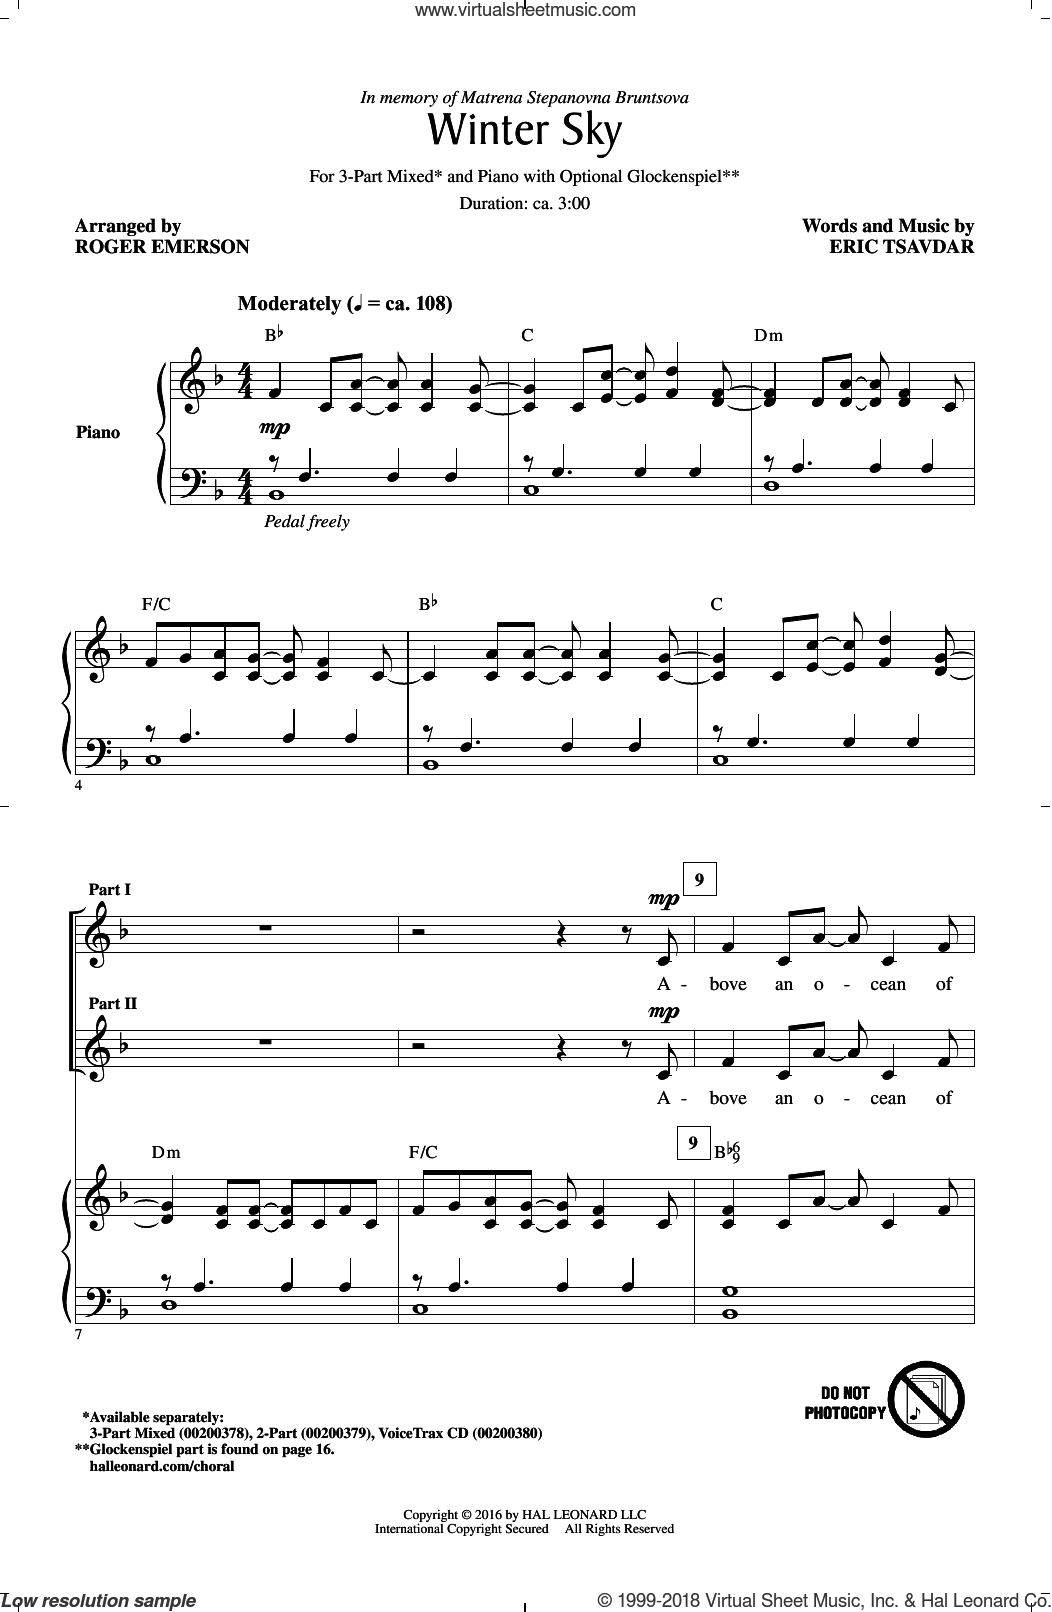 Winter Sky sheet music for choir (3-Part Mixed) by Roger Emerson and Eric Tsavdar, intermediate skill level